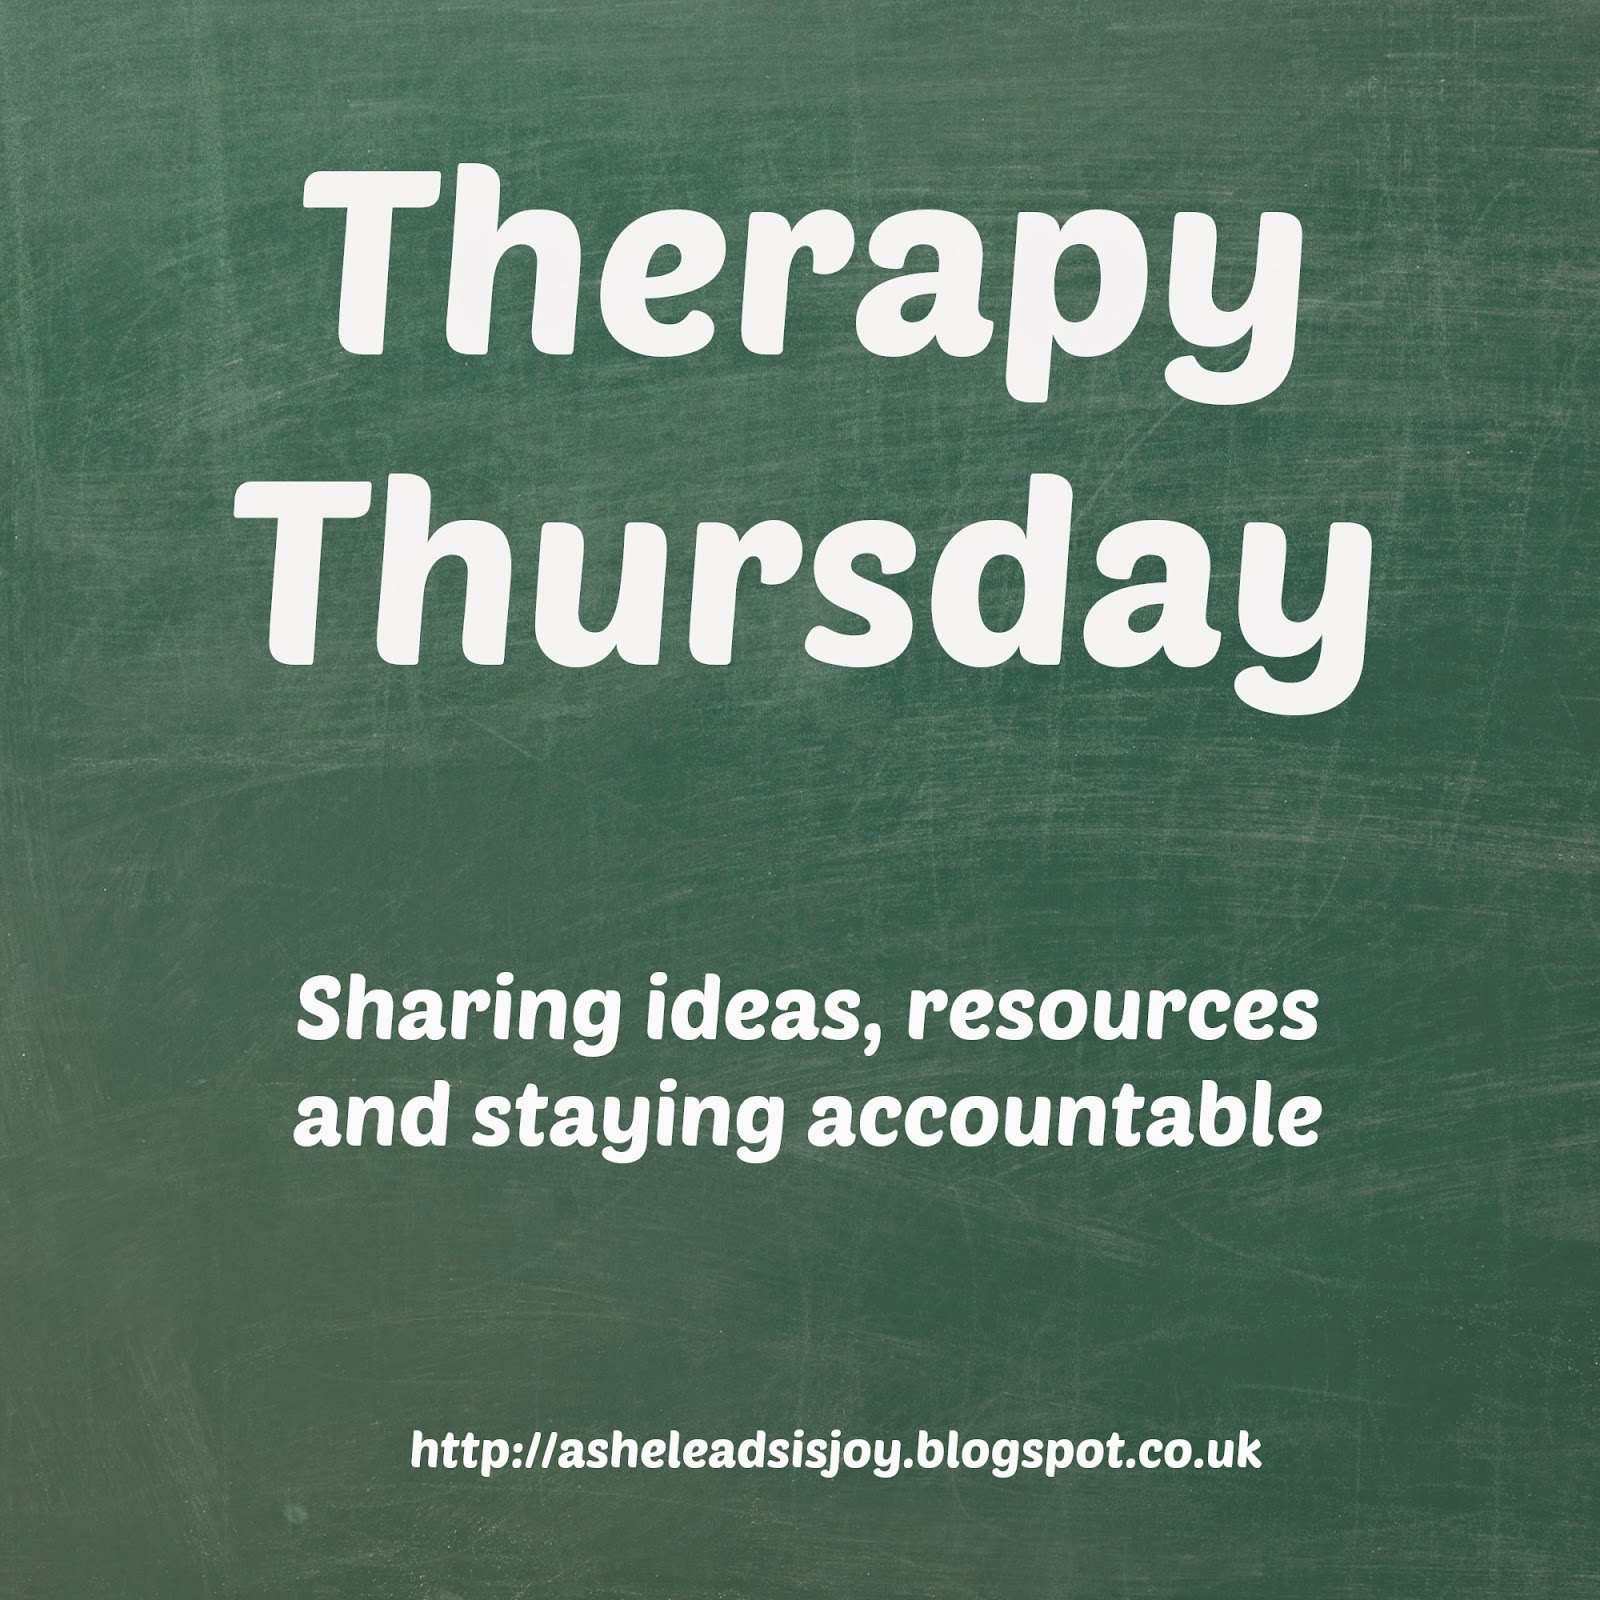 http://asheleadsisjoy.blogspot.co.uk/search/label/Therapy%20Thursday